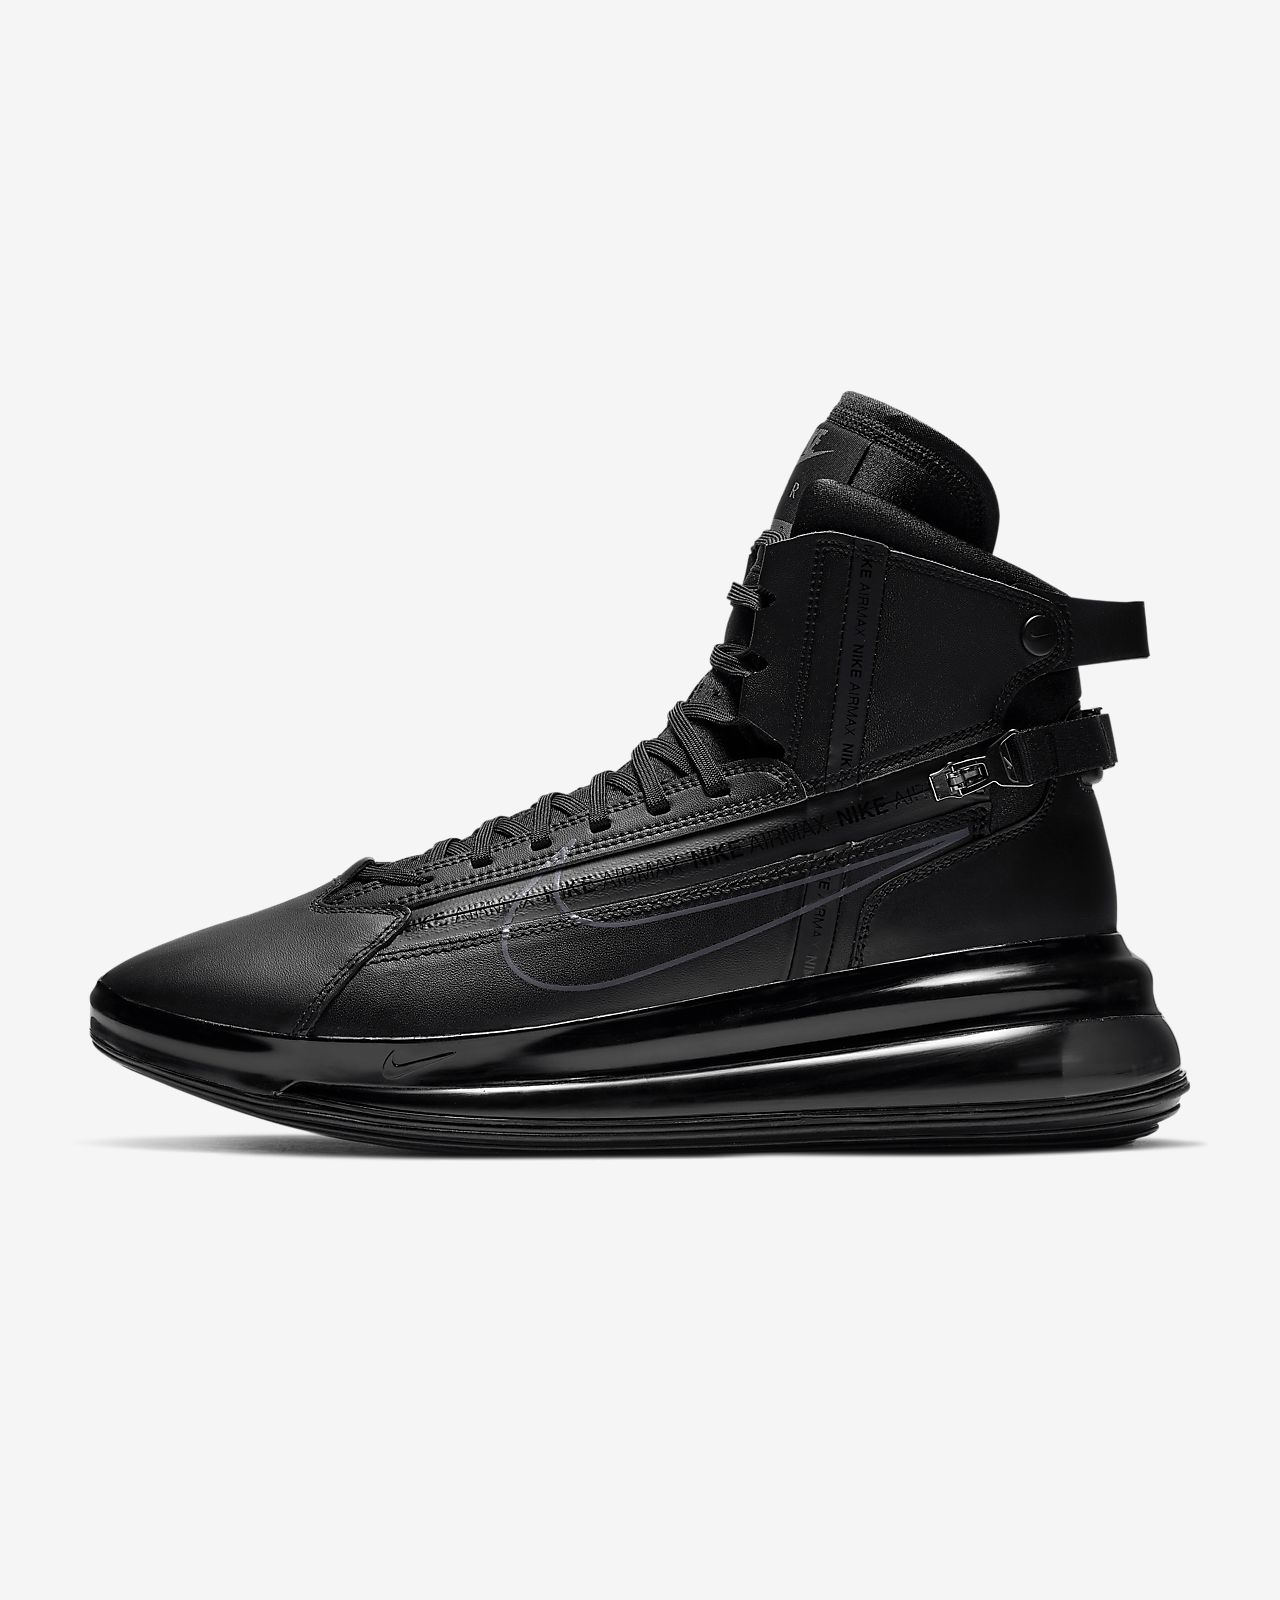 check out 5c7a0 b98d1 Men s Shoe. Nike Air Max 720 SATRN